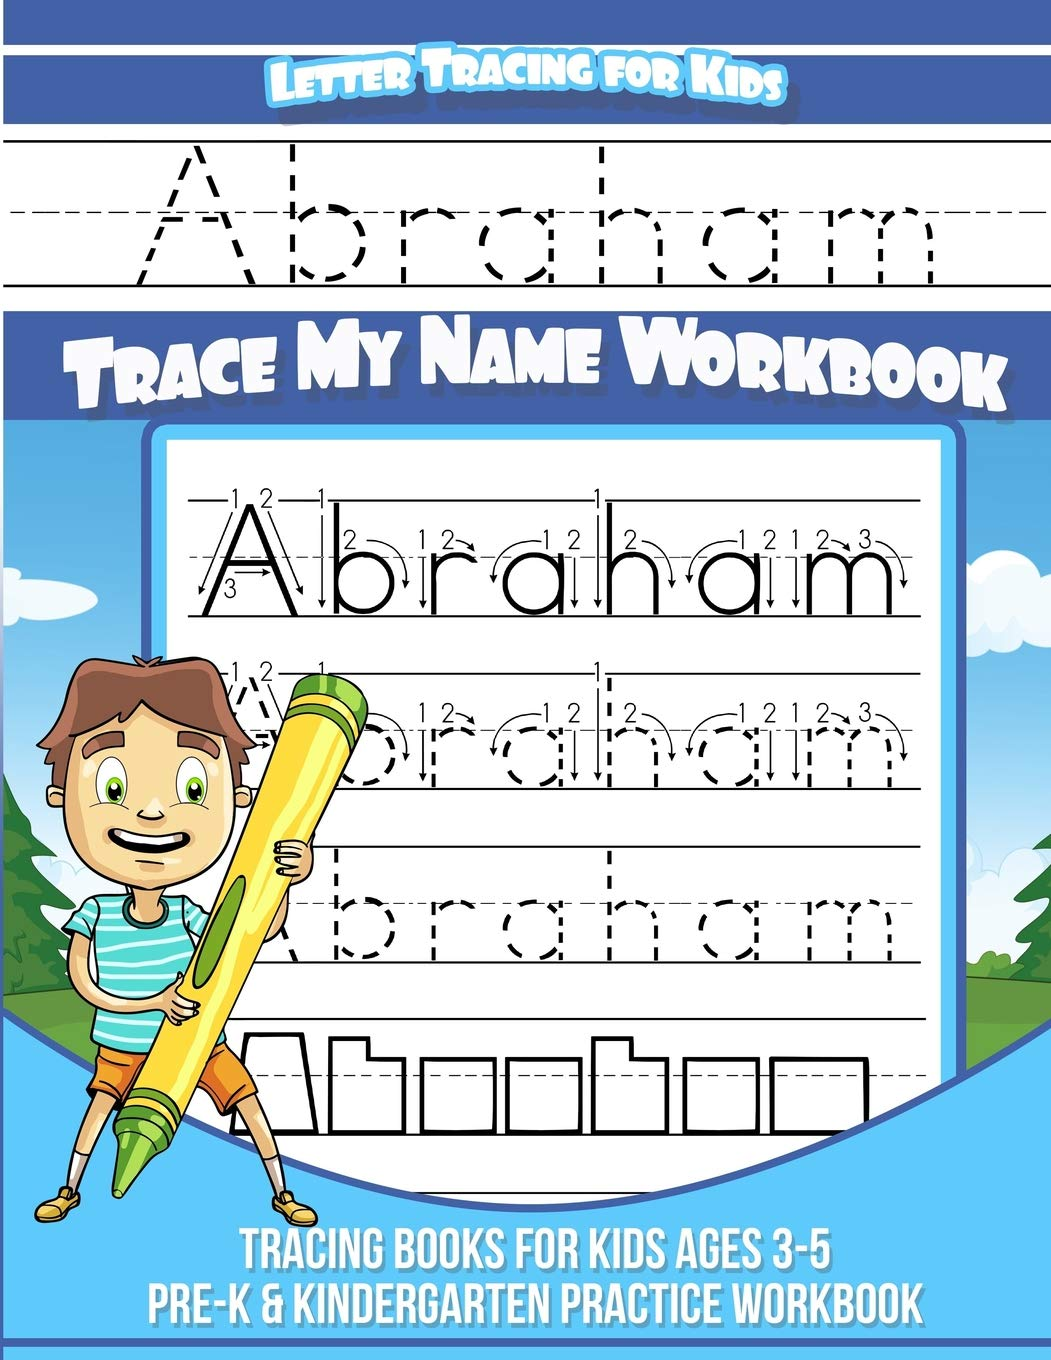 Abraham Letter Tracing for Kids Trace my Name Workbook.